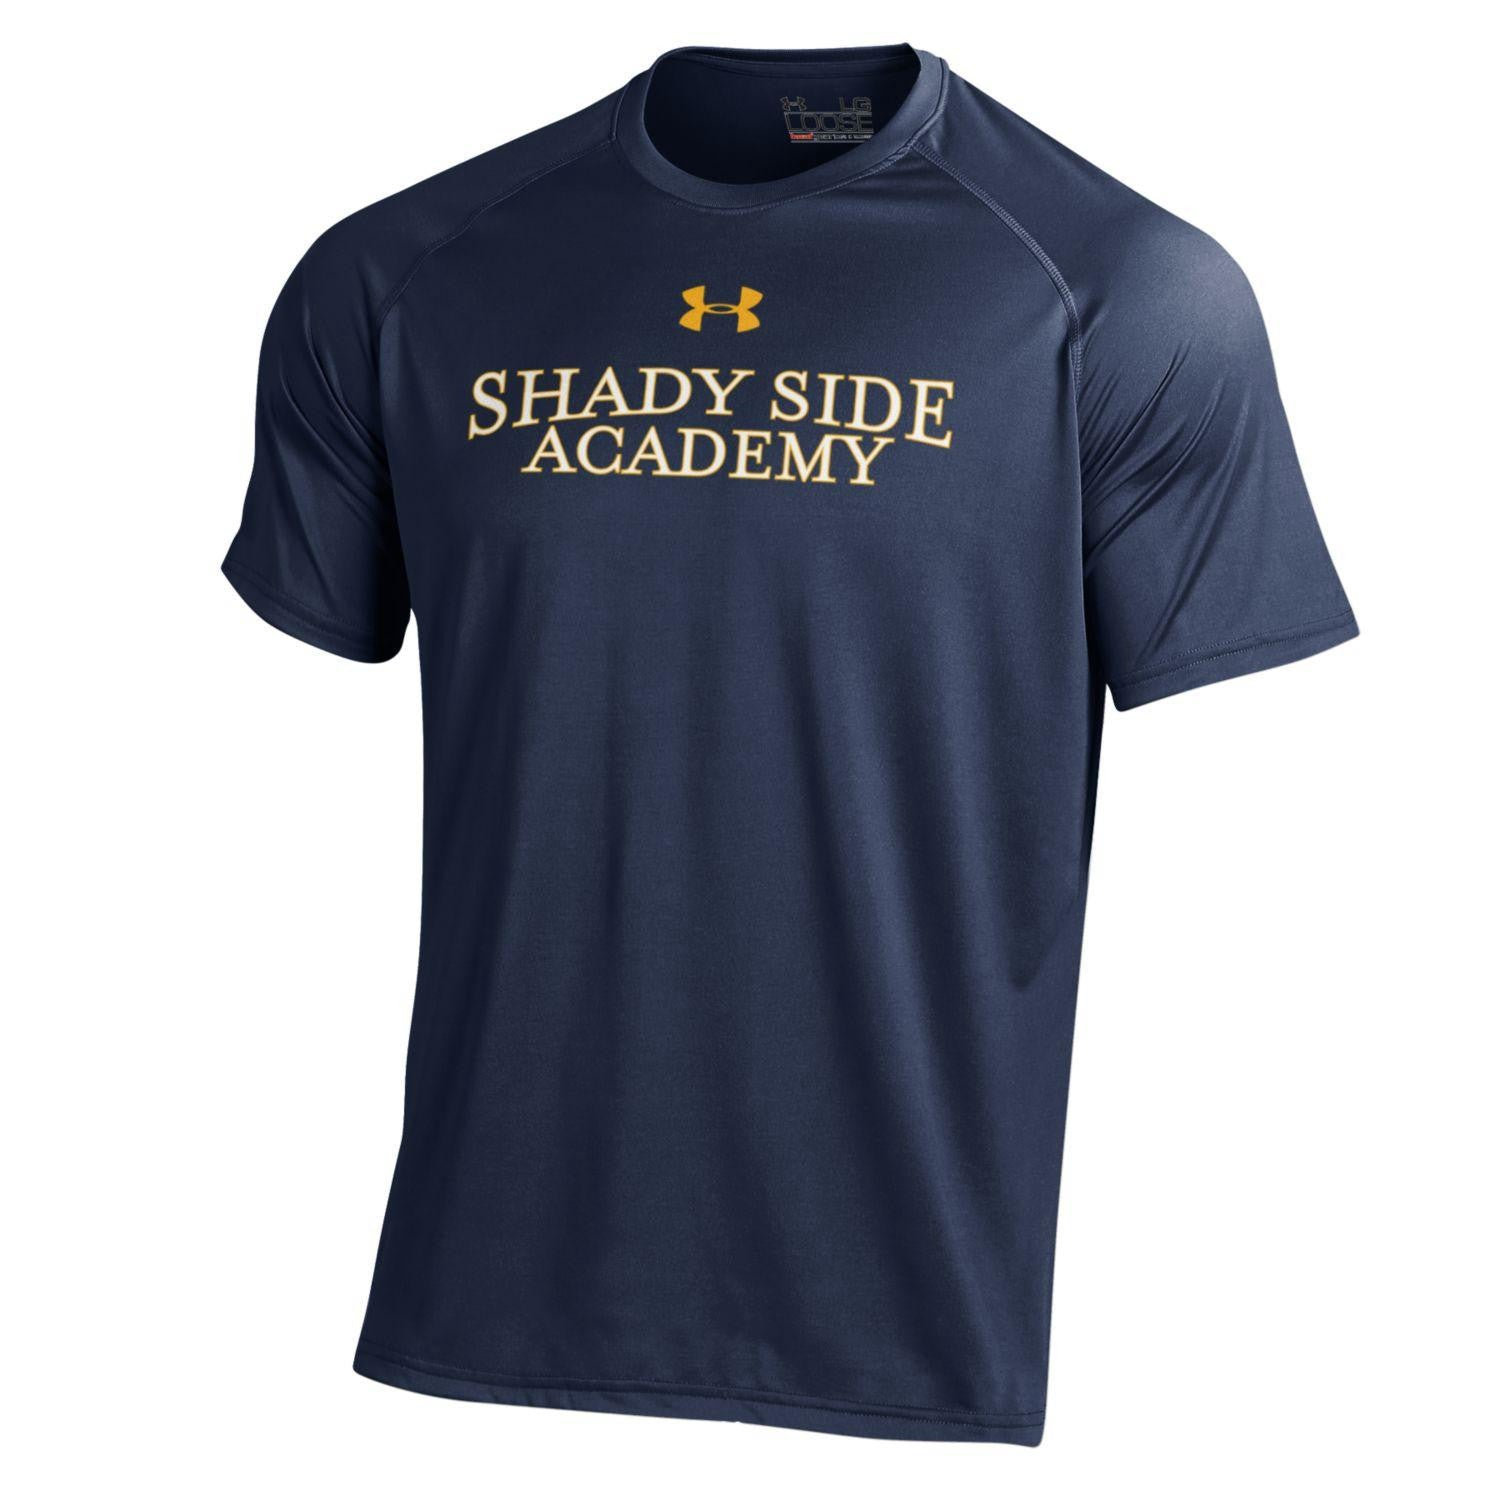 Tech T-Shirt by Under Armour, Men's CLEARANCE